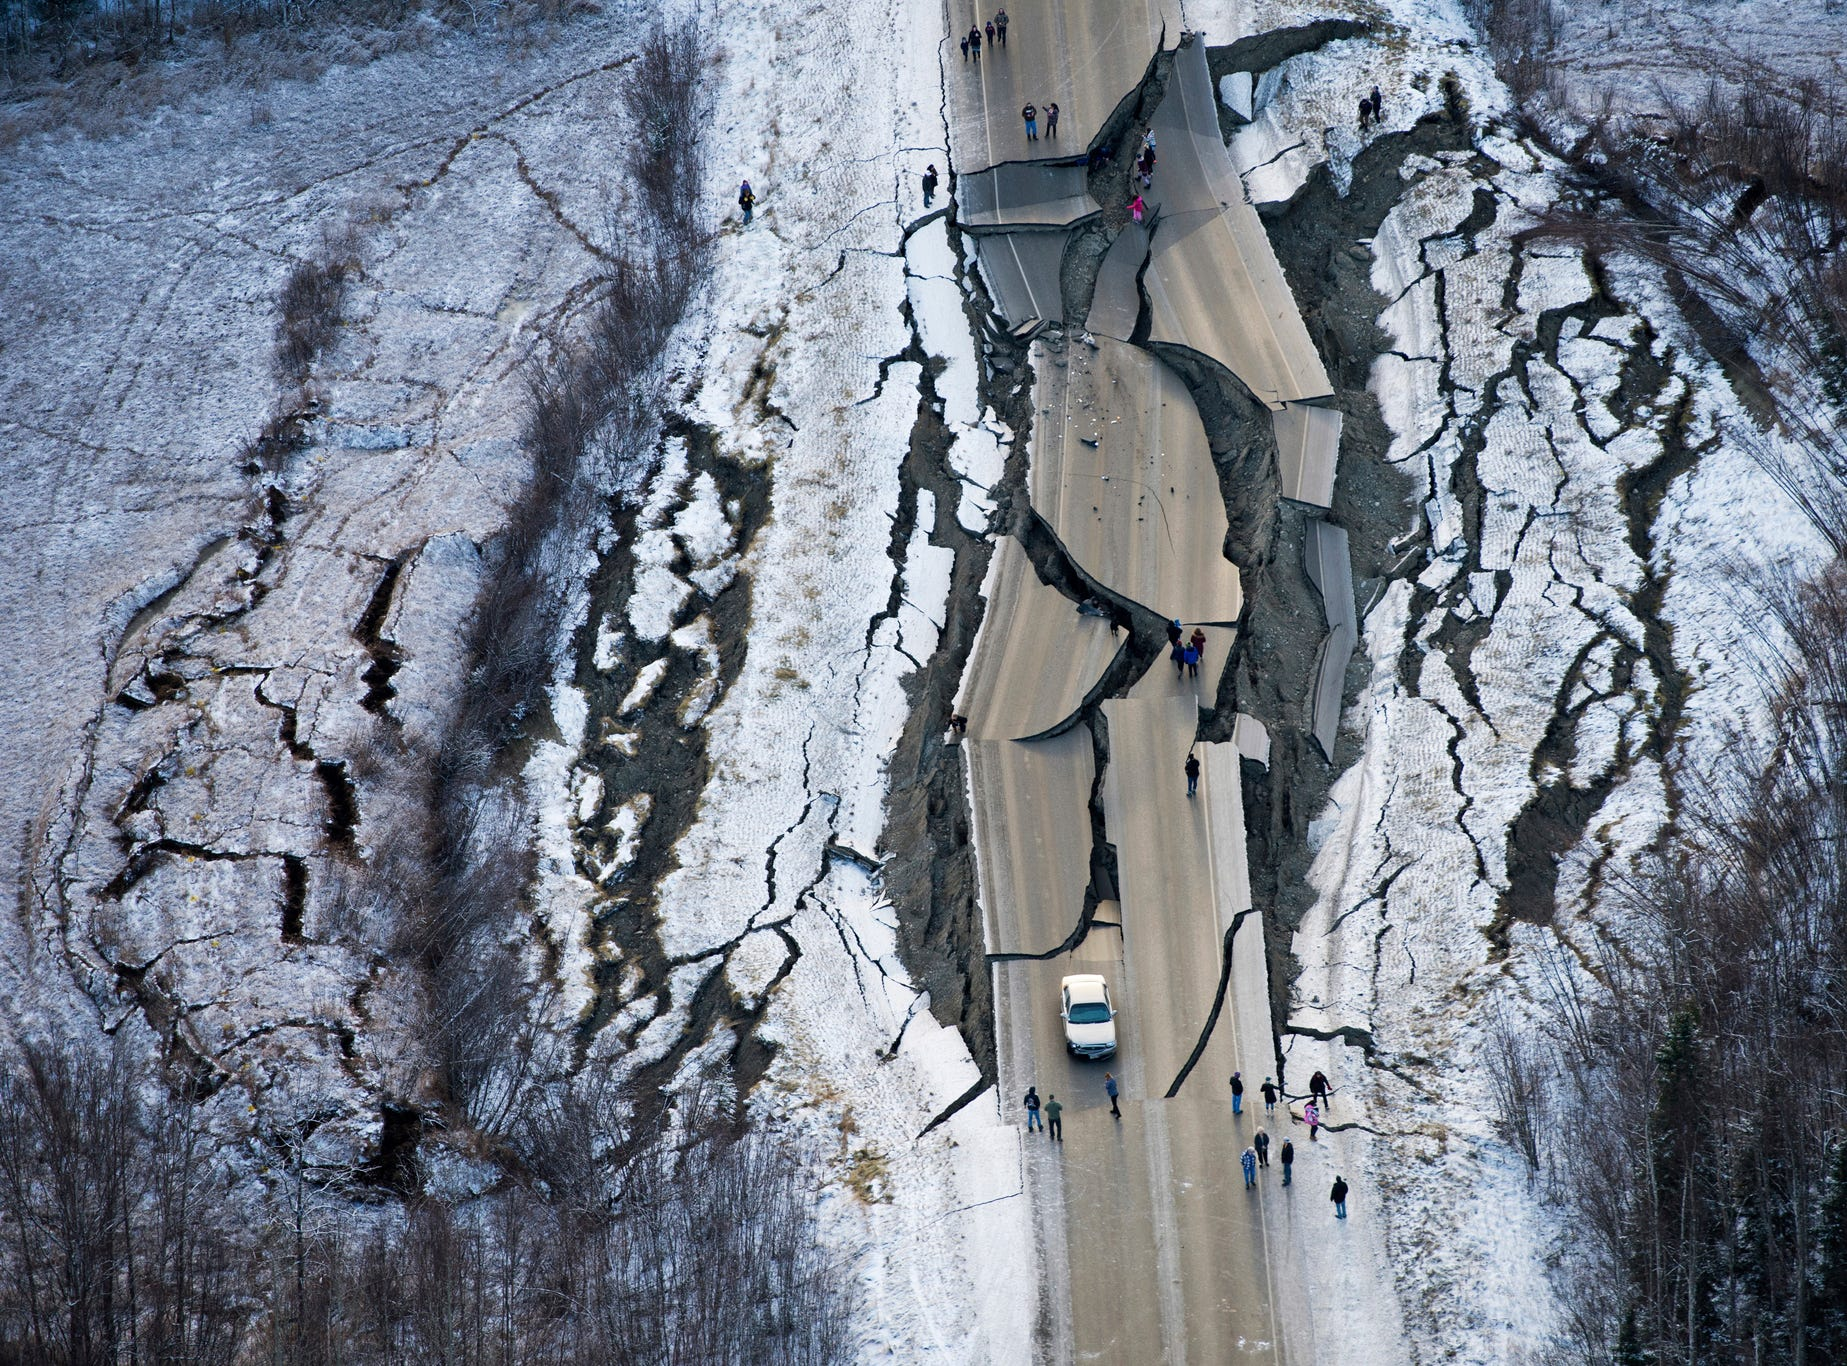 This aerial photo shows damage on Vine Road, south of Wasilla, Alaska, after earthquakes, Nov. 30, 2018. Back-to-back earthquakes measuring 7.0 and 5.7 shattered highways and rocked buildings in Anchorage and the surrounding area, sending people running into the streets and briefly triggering a tsunami warning for islands and coastal areas south of the city.